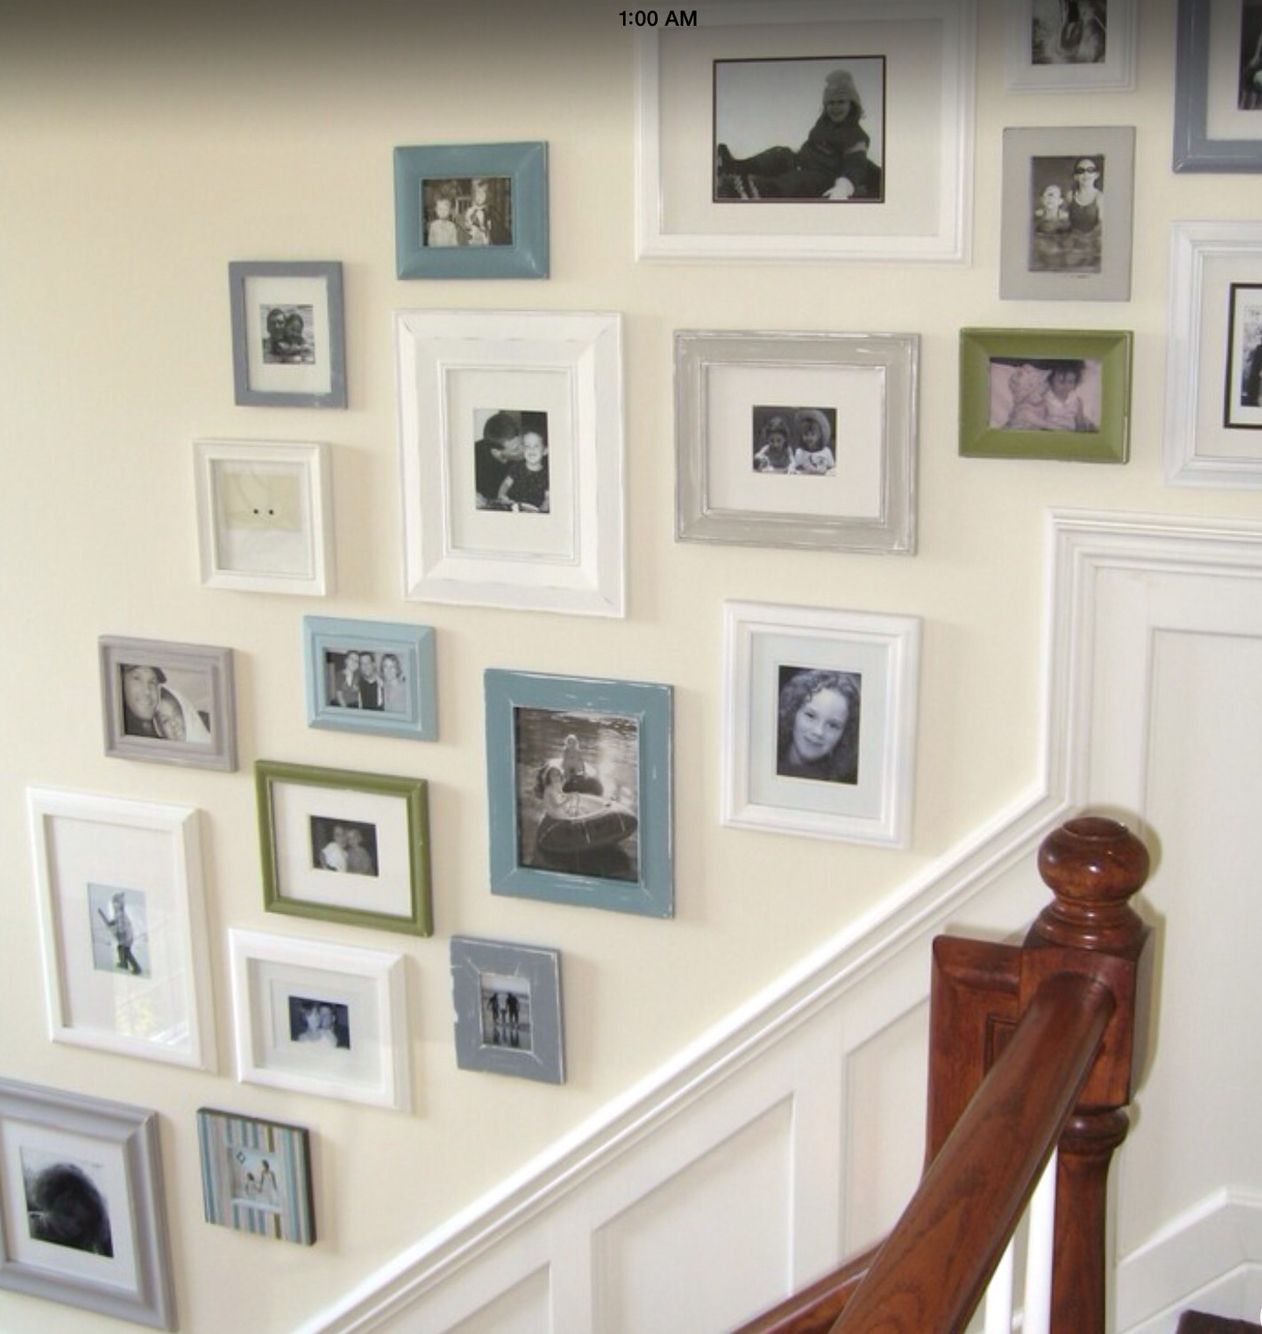 Wall collage | Wall Collages in 2018 | Pinterest | Wall collage ...